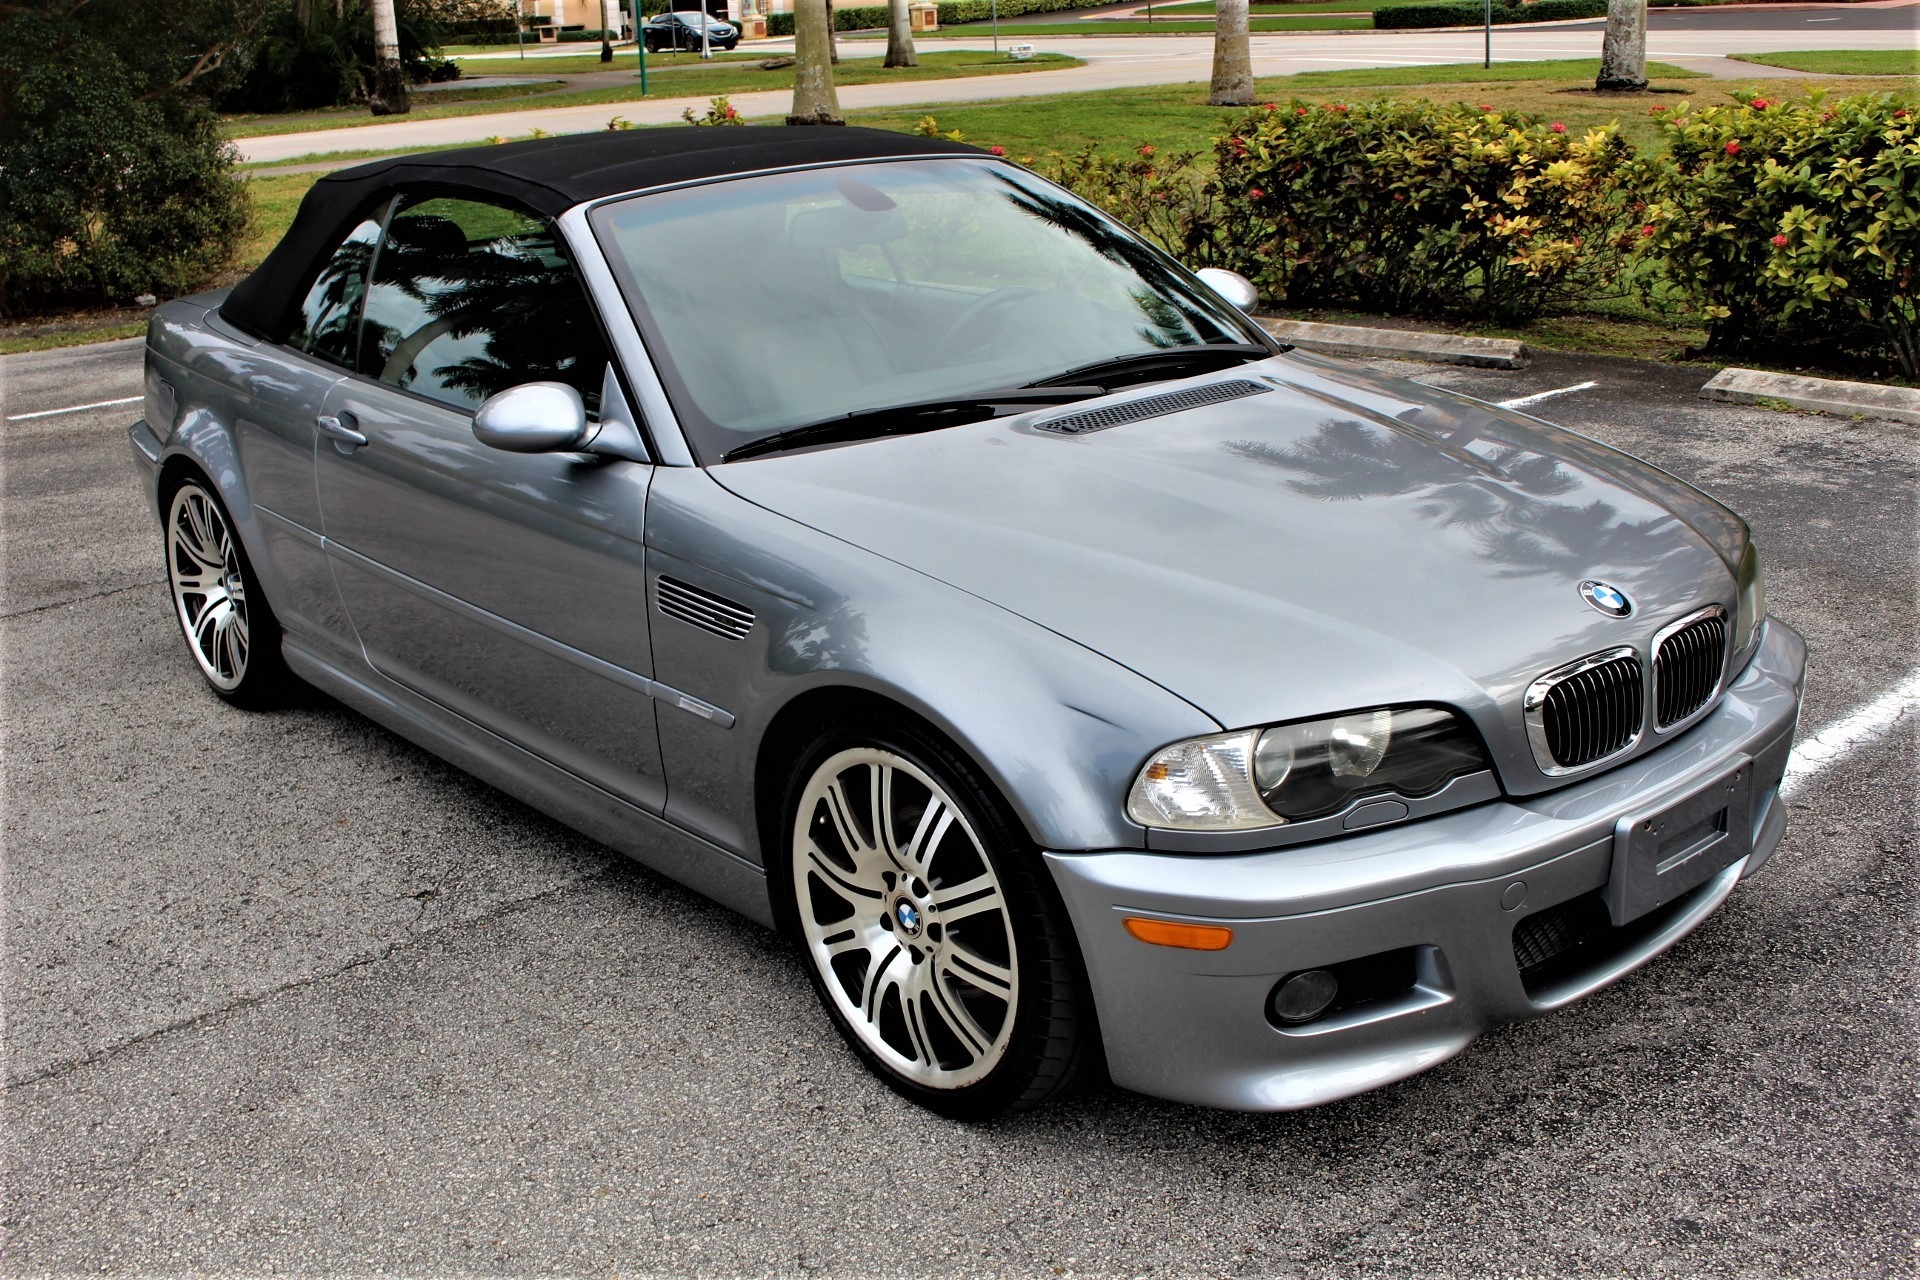 Used 2004 BMW M3 for sale Sold at The Gables Sports Cars in Miami FL 33146 2